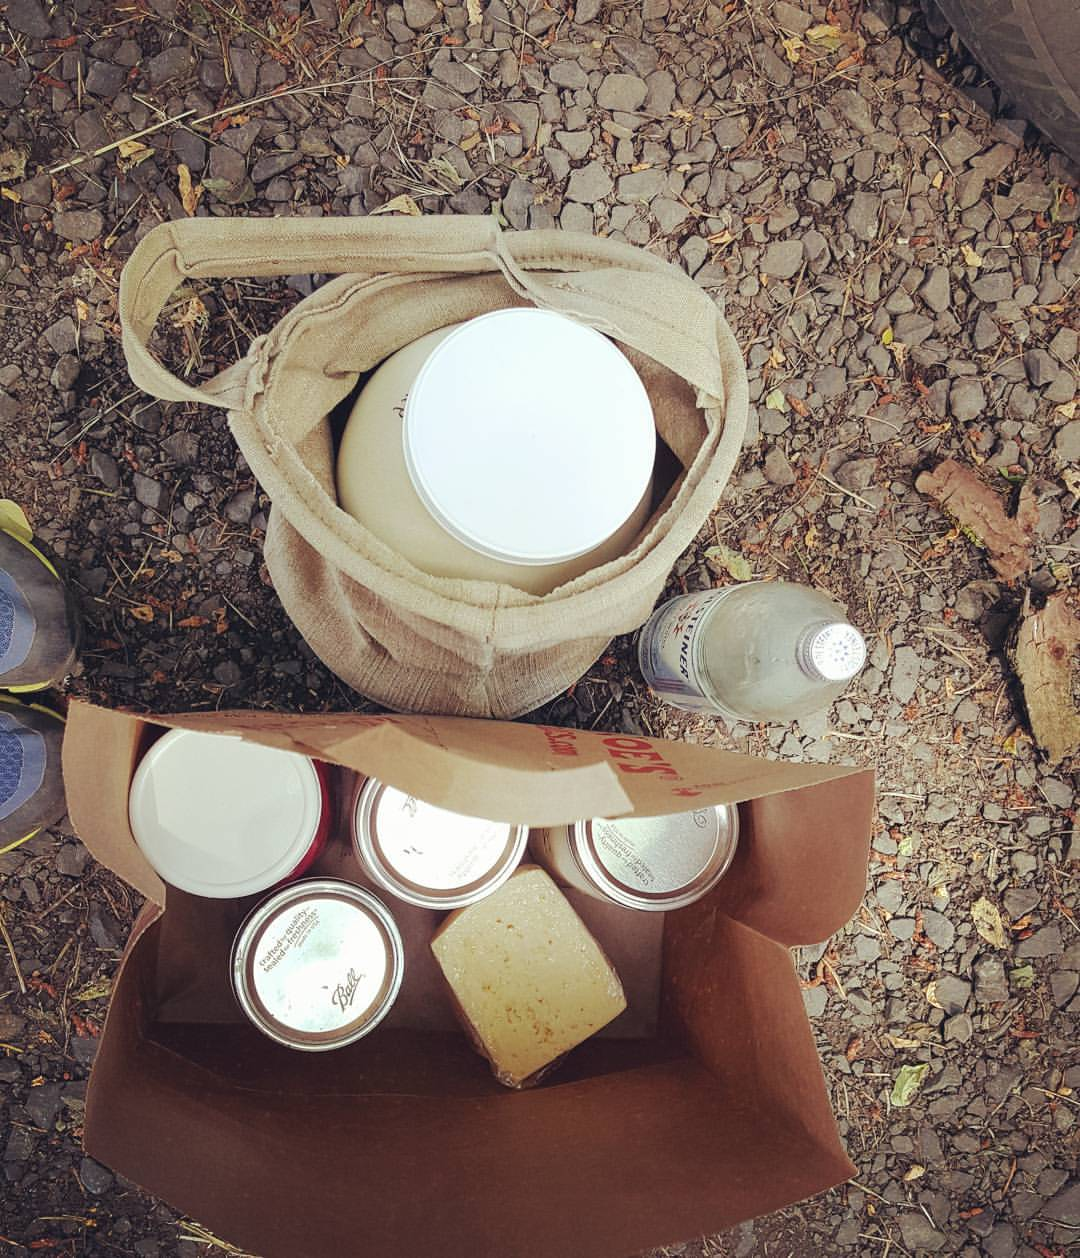 Raw Milk, Yogurt, Cheese, & other goodies from our local milk mama up the road.